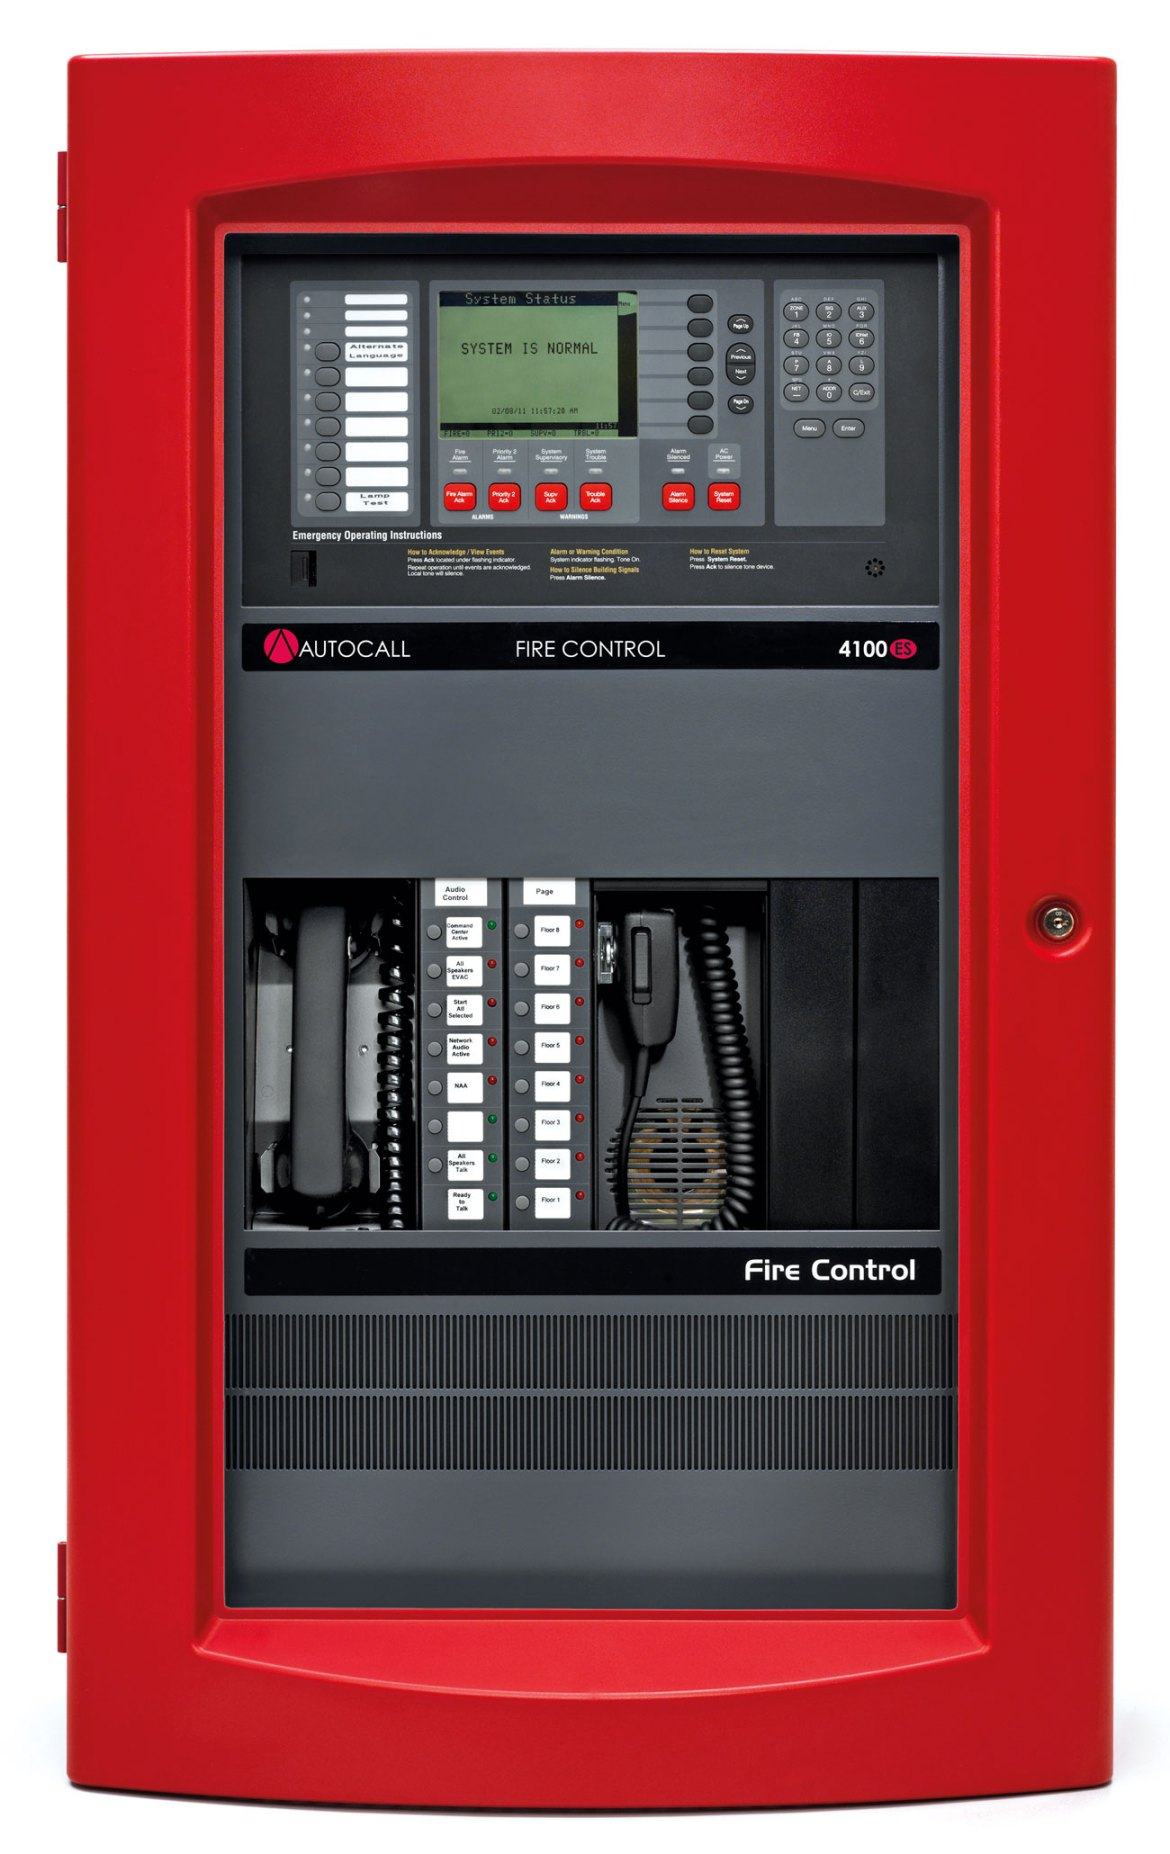 Fire alarm control units are now subject to new mounting height requirements.